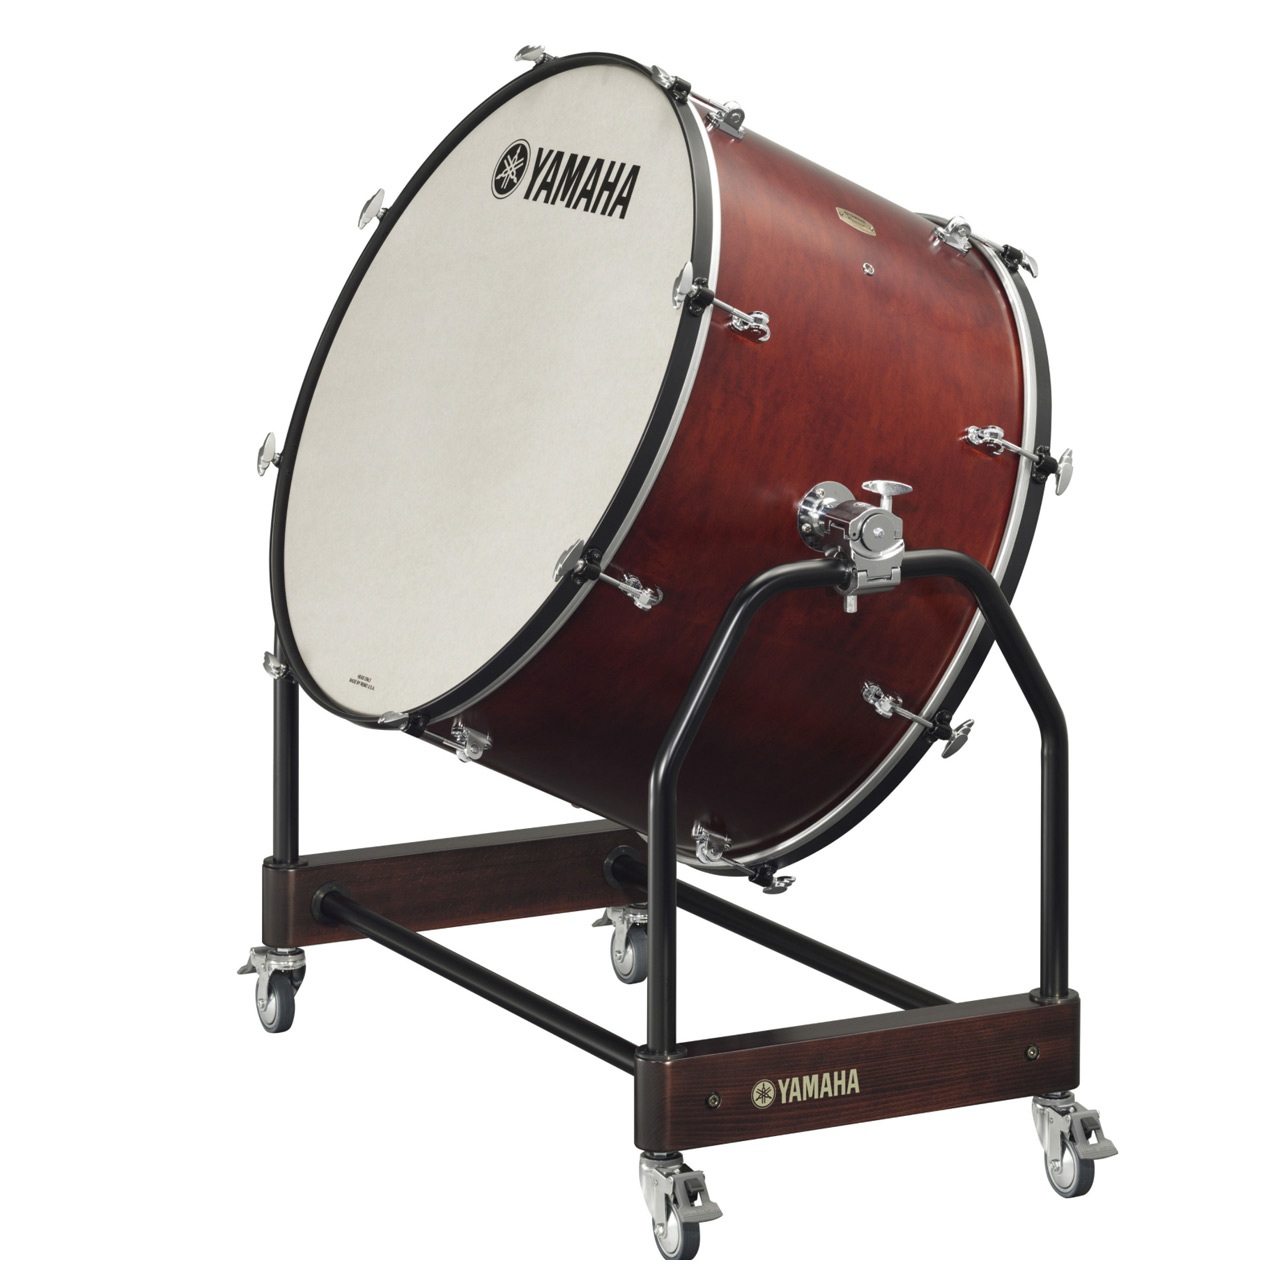 YAMAHA PERCUSSION  2-CB-9000 Series 9000 Series Concert Bass Drums  Manufacturer's photo for reference only. Photos & pricing available upon request.